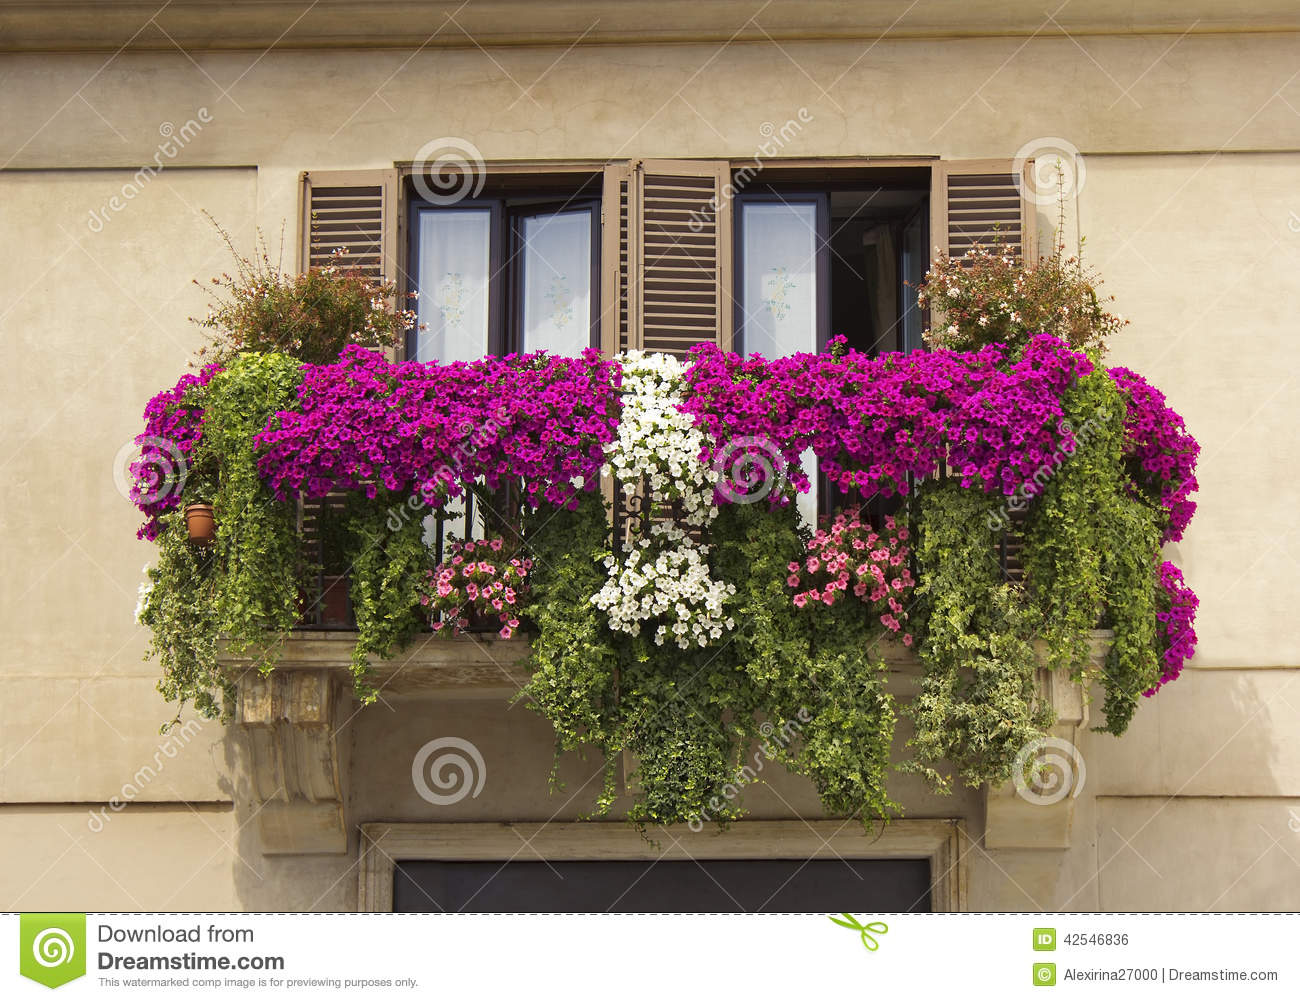 Фотообои на заказ - balcony decorated with flowers petunias .